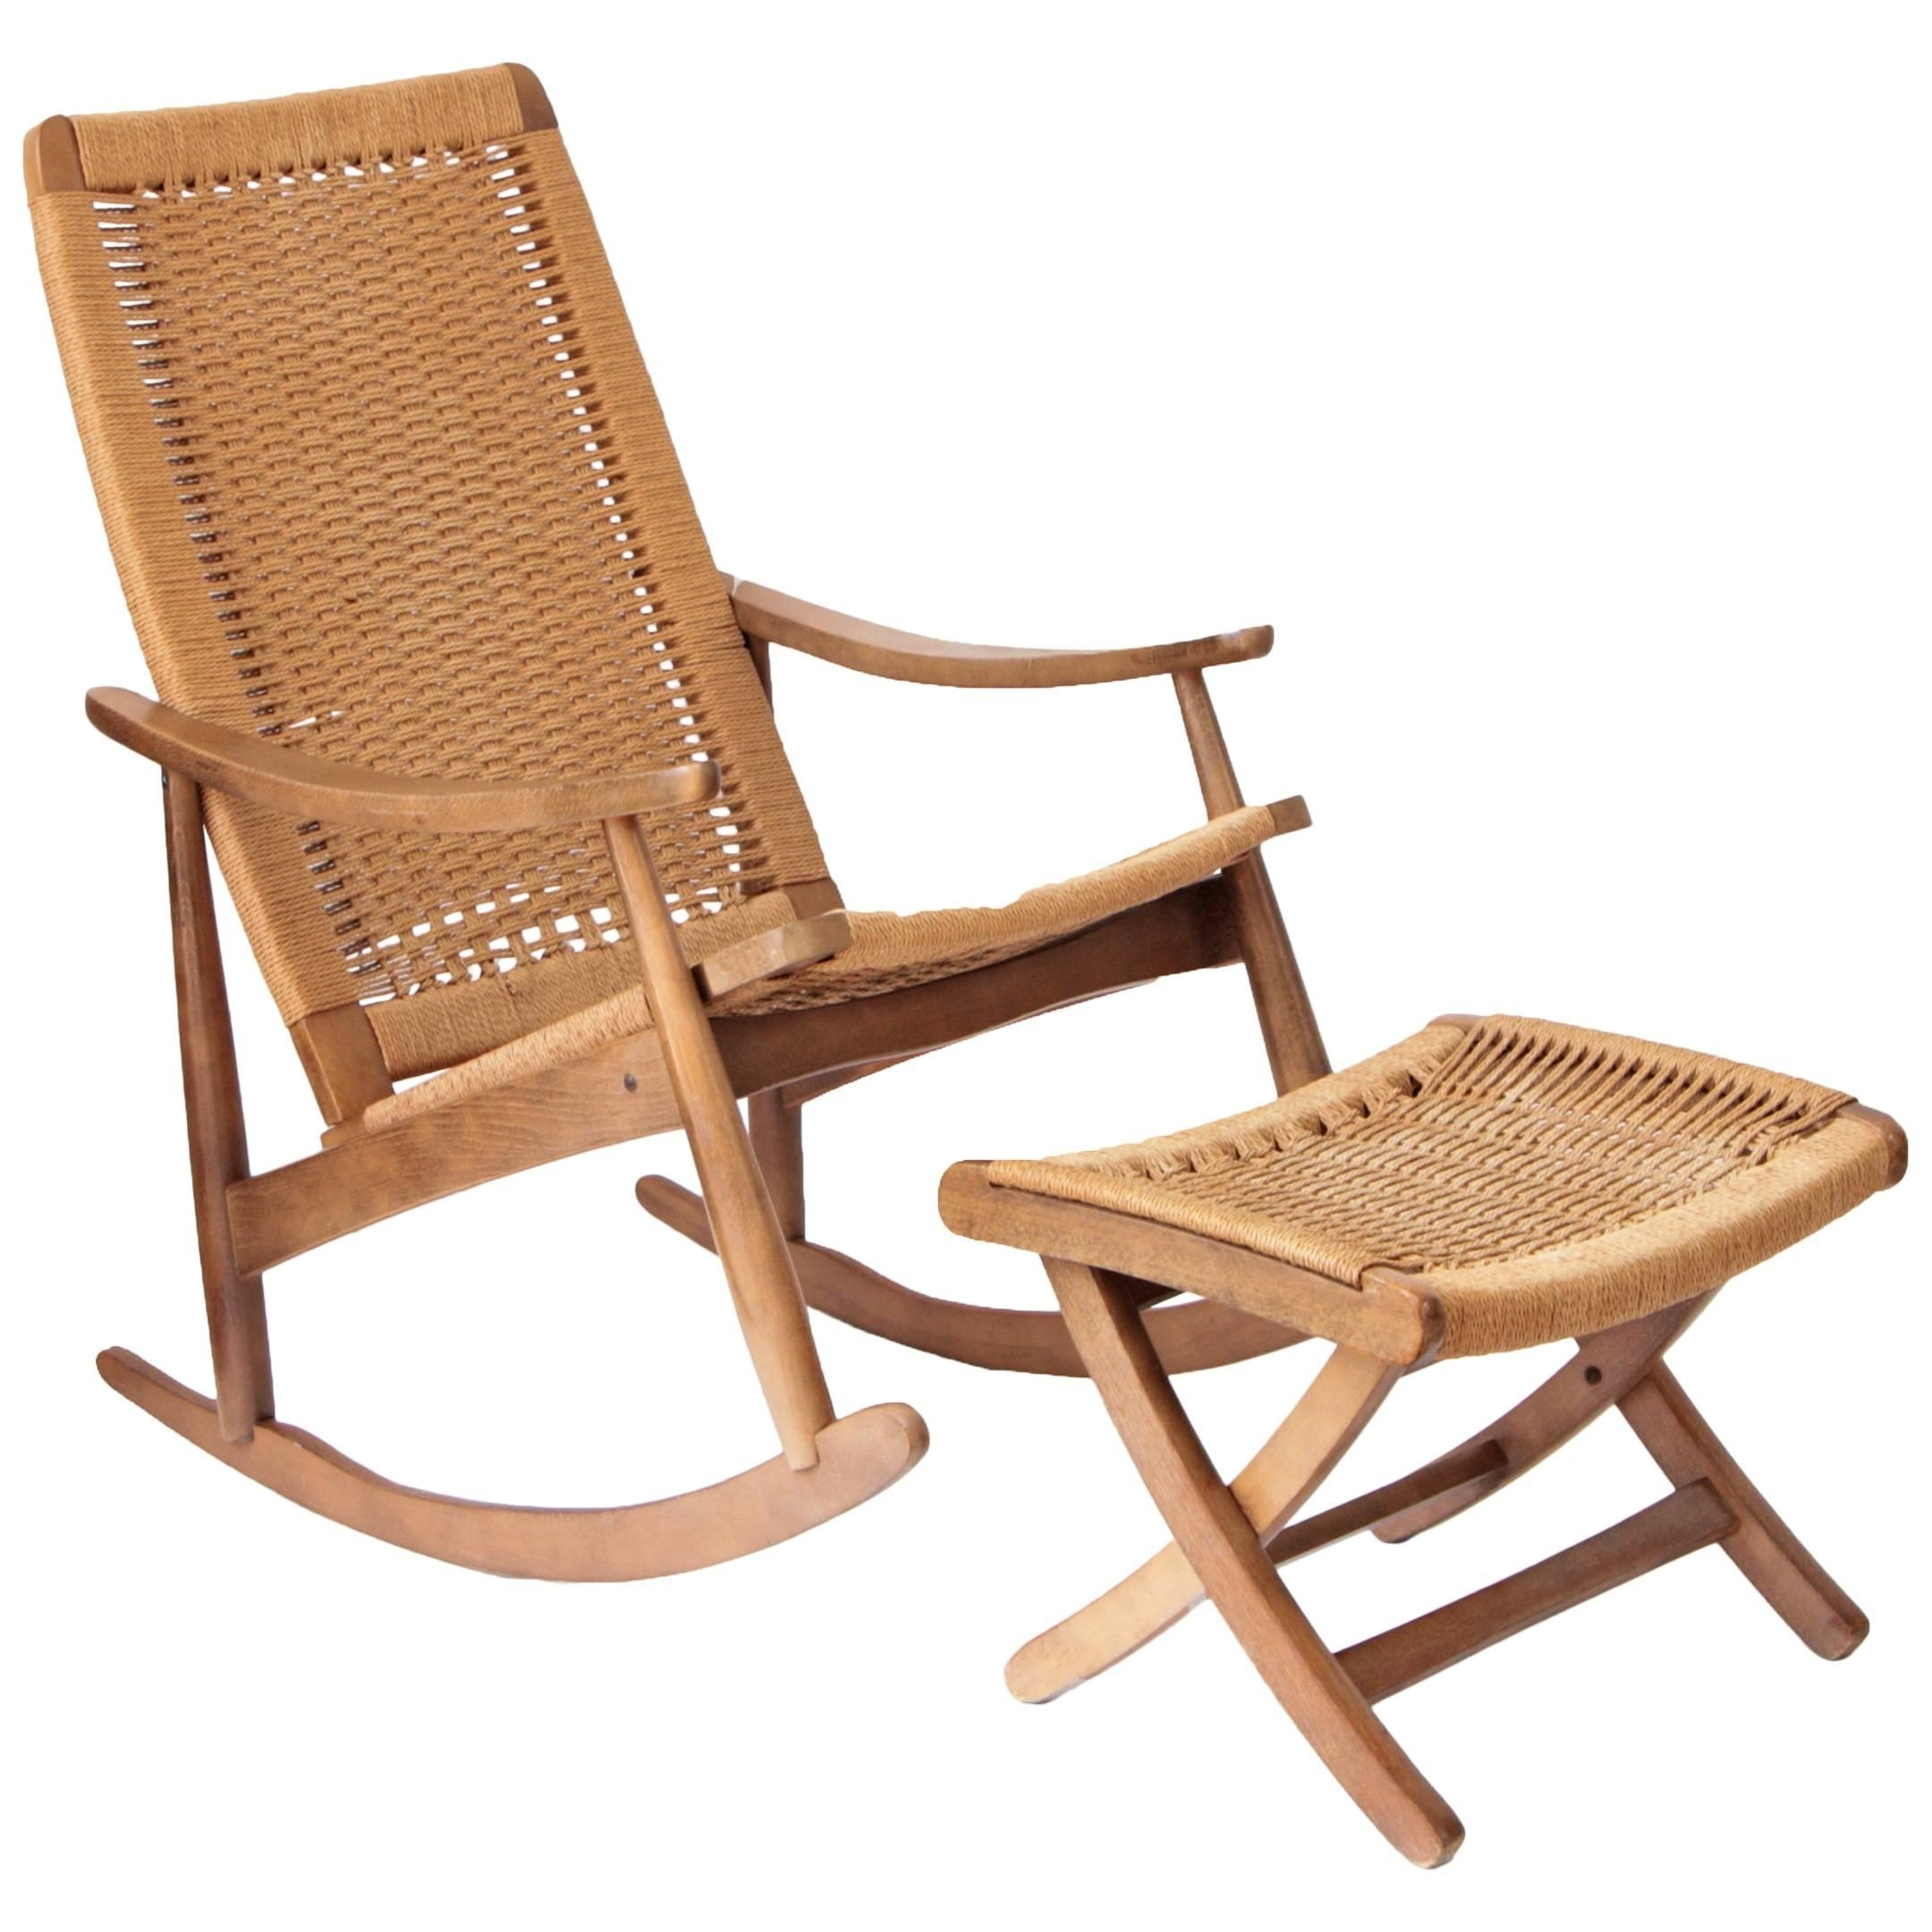 Patio Rocking Chairs With Ottoman Throughout Well Known Woven Rope Mid Century Modern Rocking Chair And Ottoman At 1Stdibs (View 12 of 15)